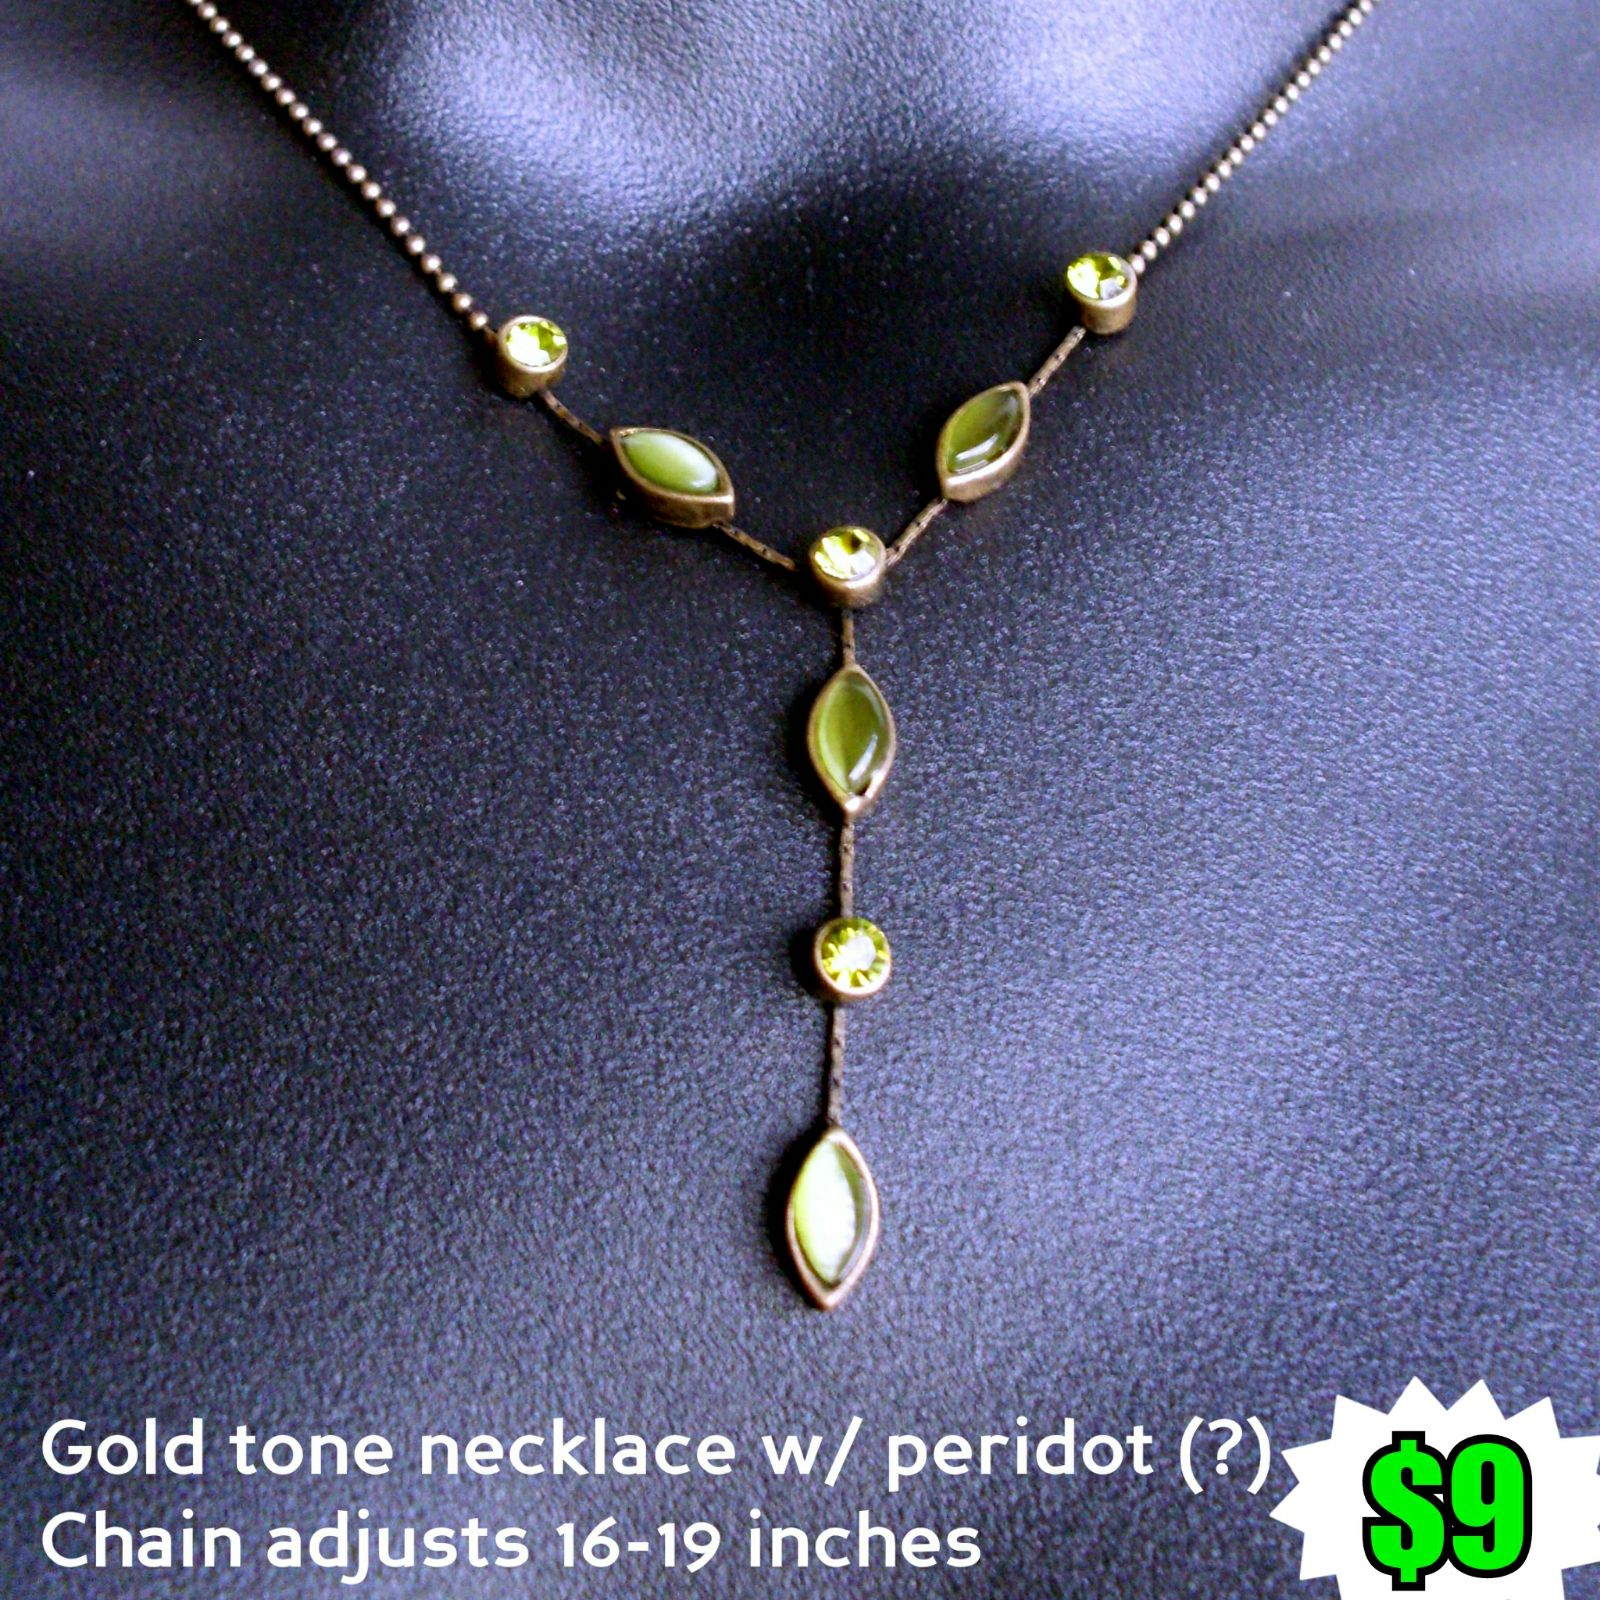 Adjustable gold tone necklace w/ peridot